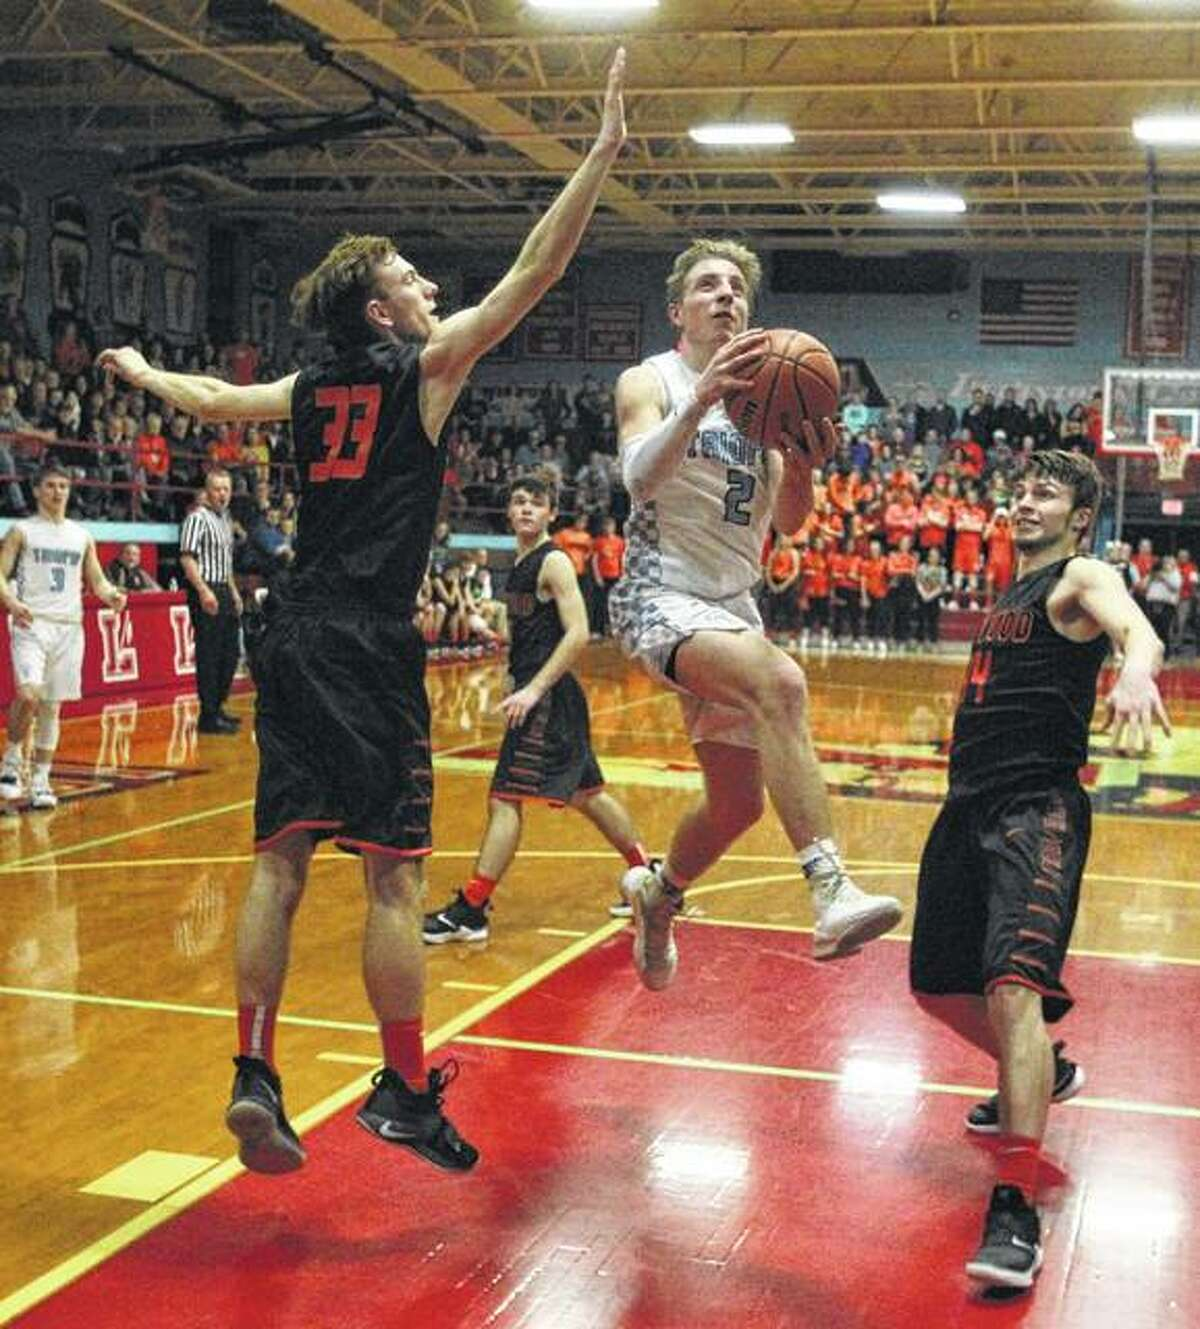 Triopia's Shawn Bell puts up a shot Friday night.